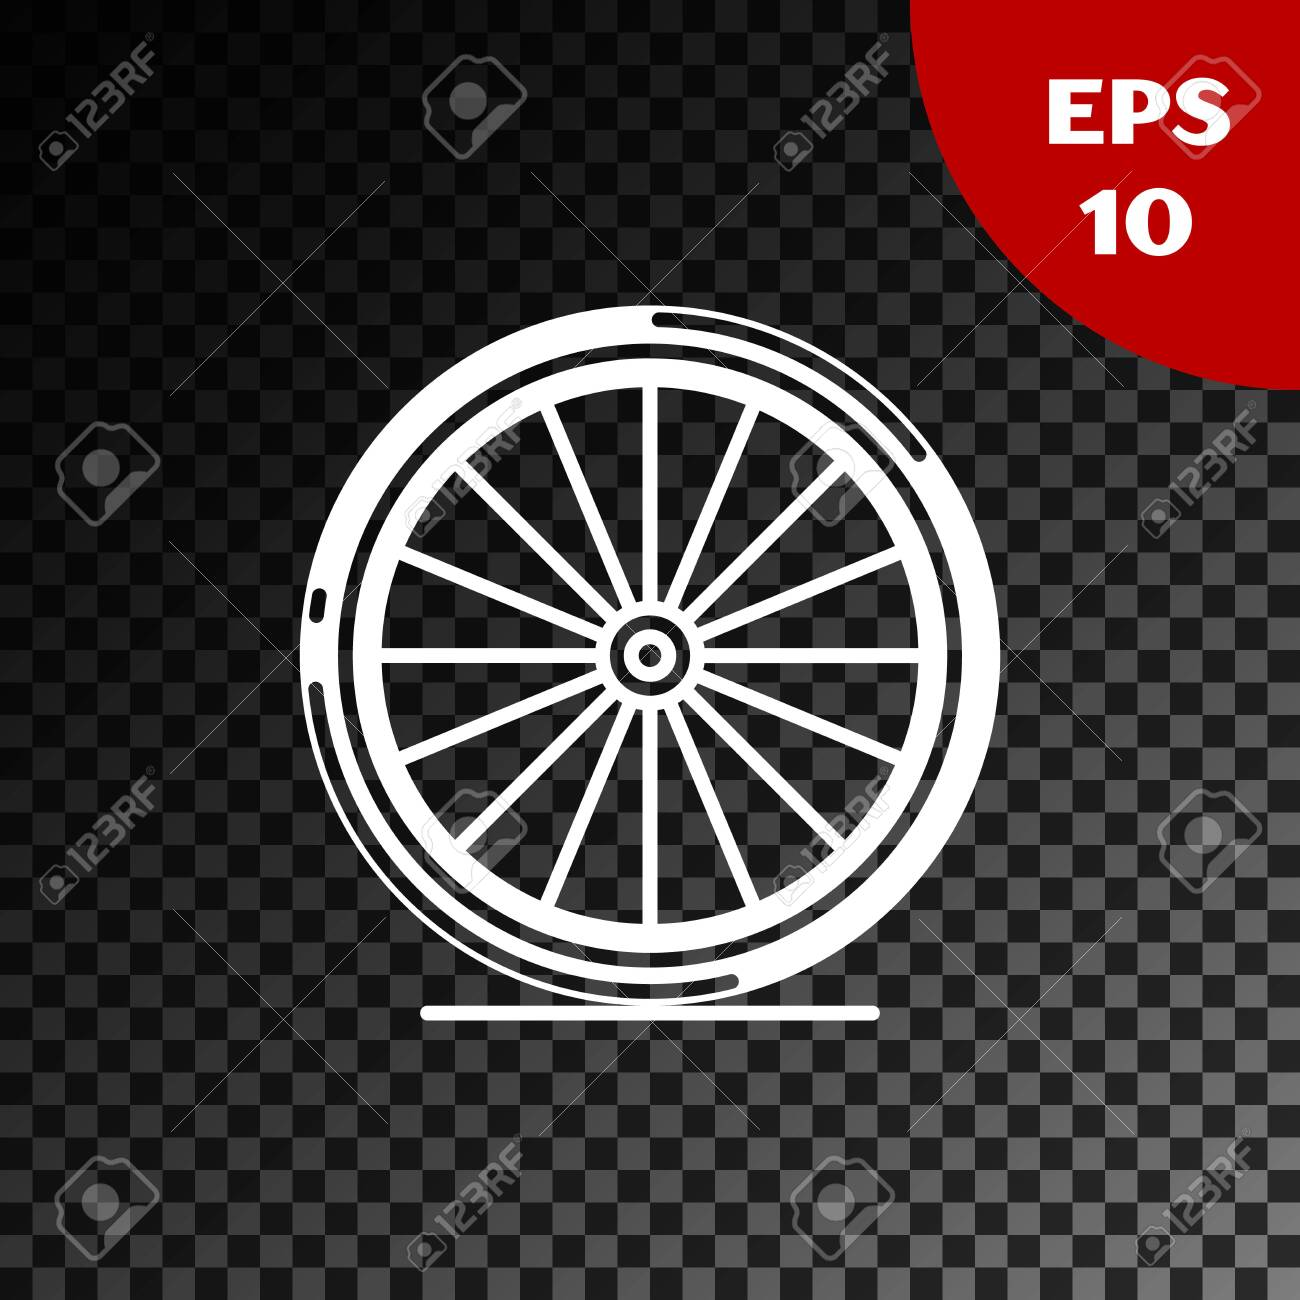 White Bicycle Wheel Icon Isolated On Transparent Dark Background Royalty Free Cliparts Vectors And Stock Illustration Image 132106549